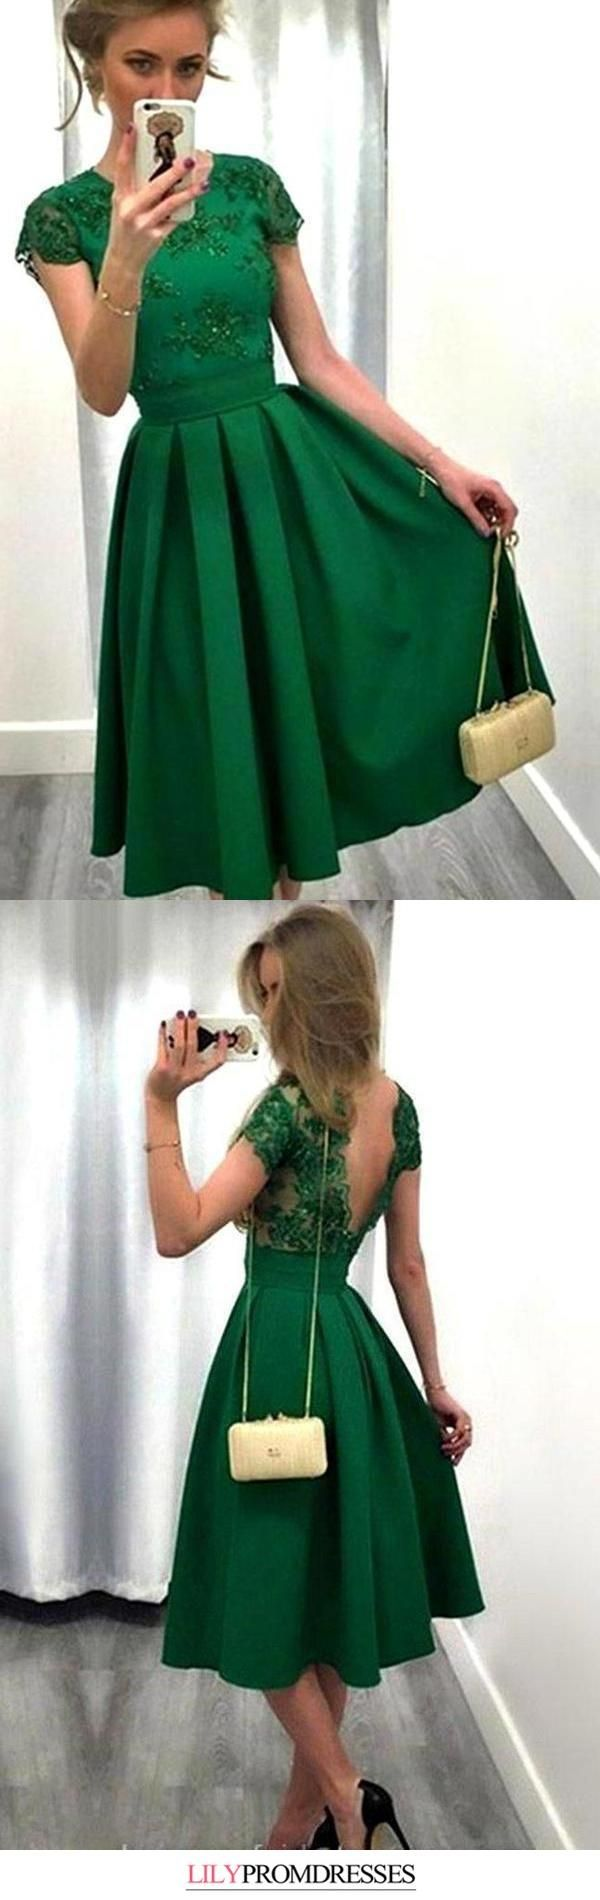 Casual A-line Scoop Satin Appliques Lace Knee-length Backless Short Sleeve Prom Dresses